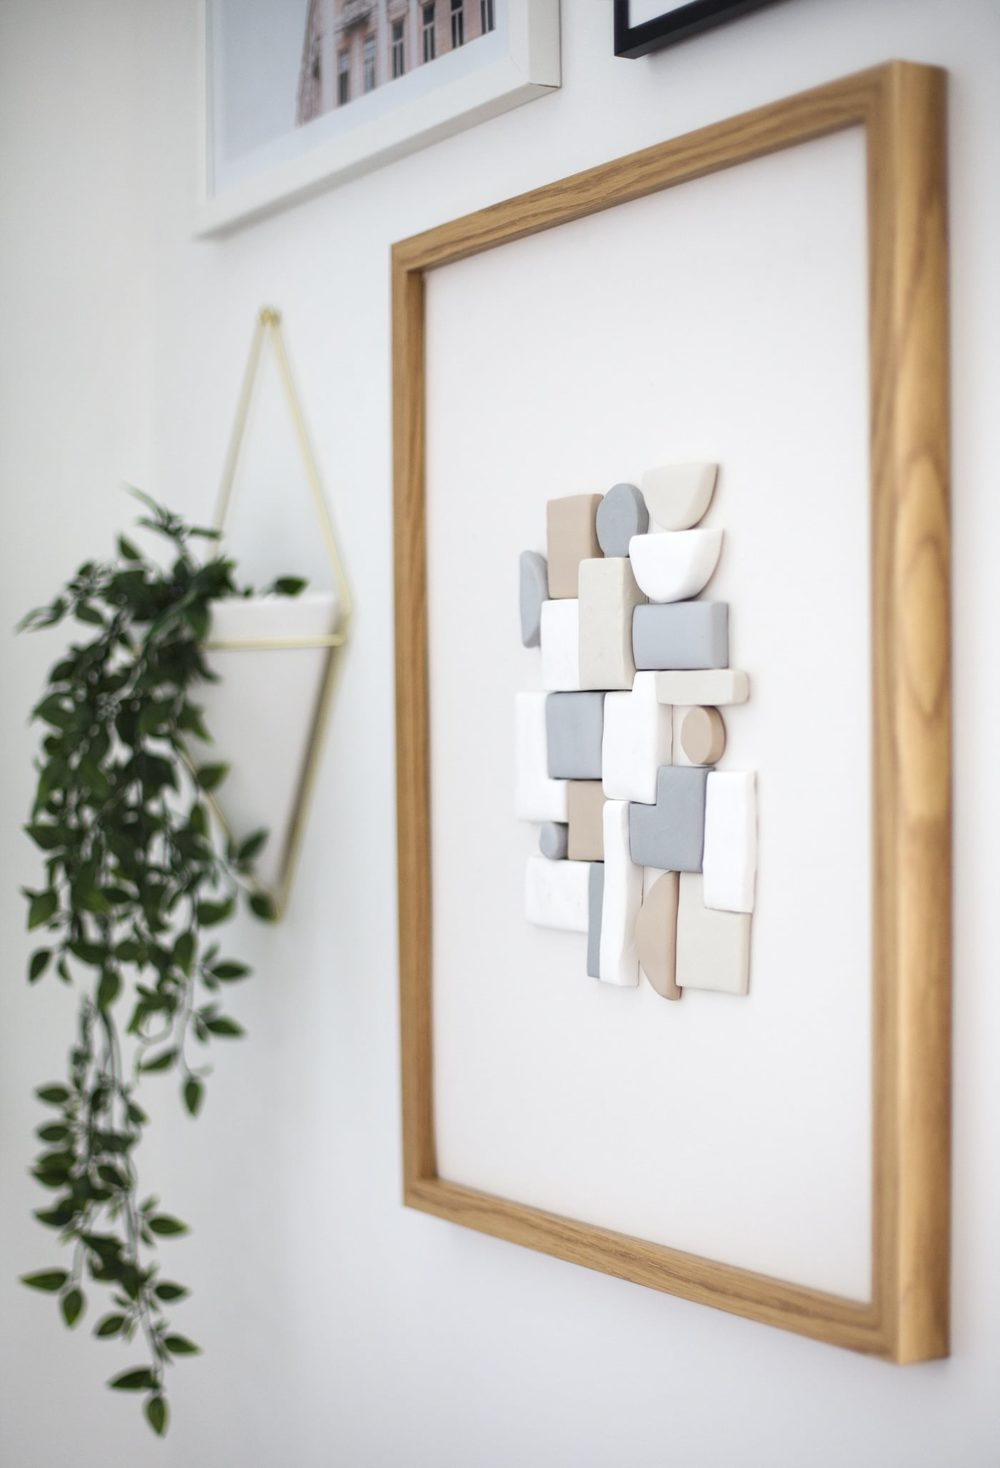 Minimalist Wall Art